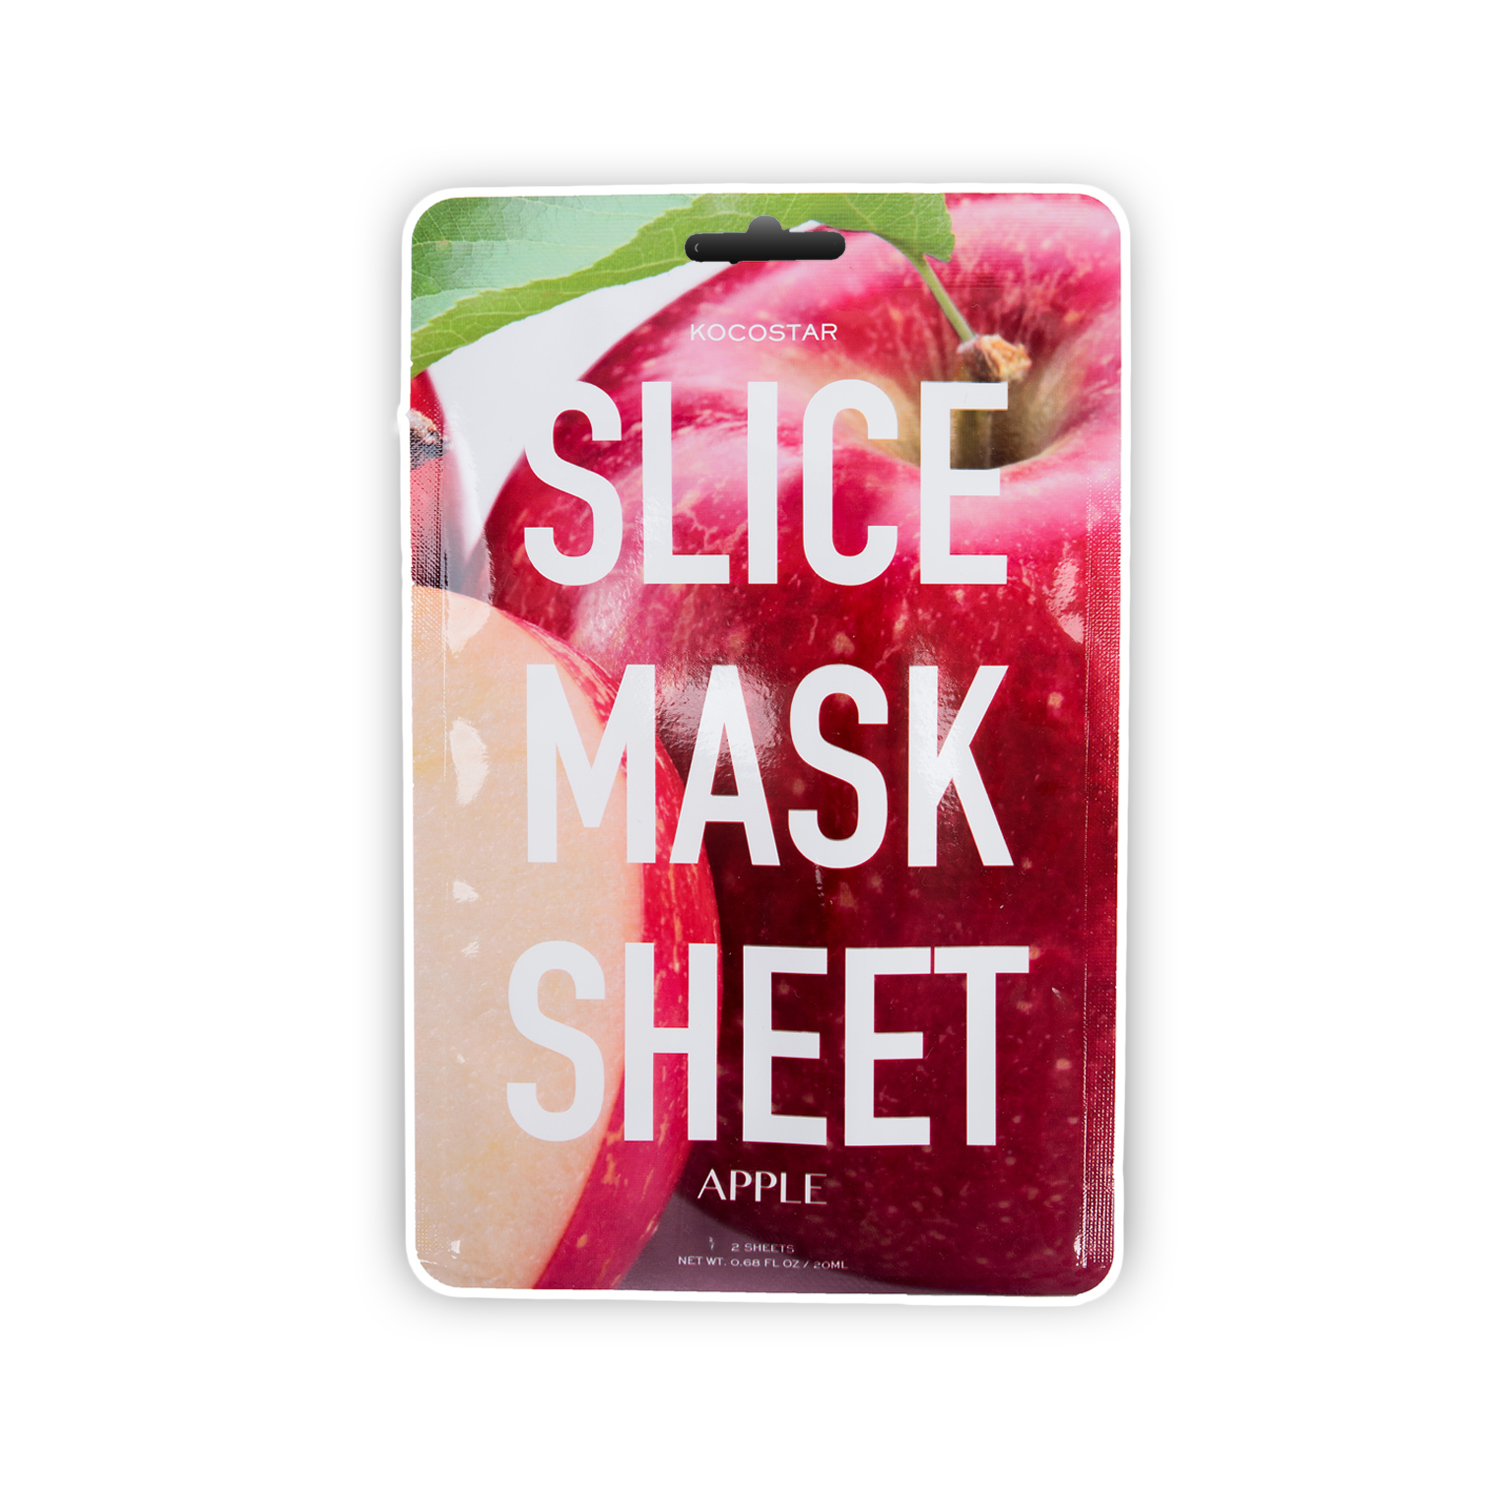 Slice Mask Sheet (Apple)